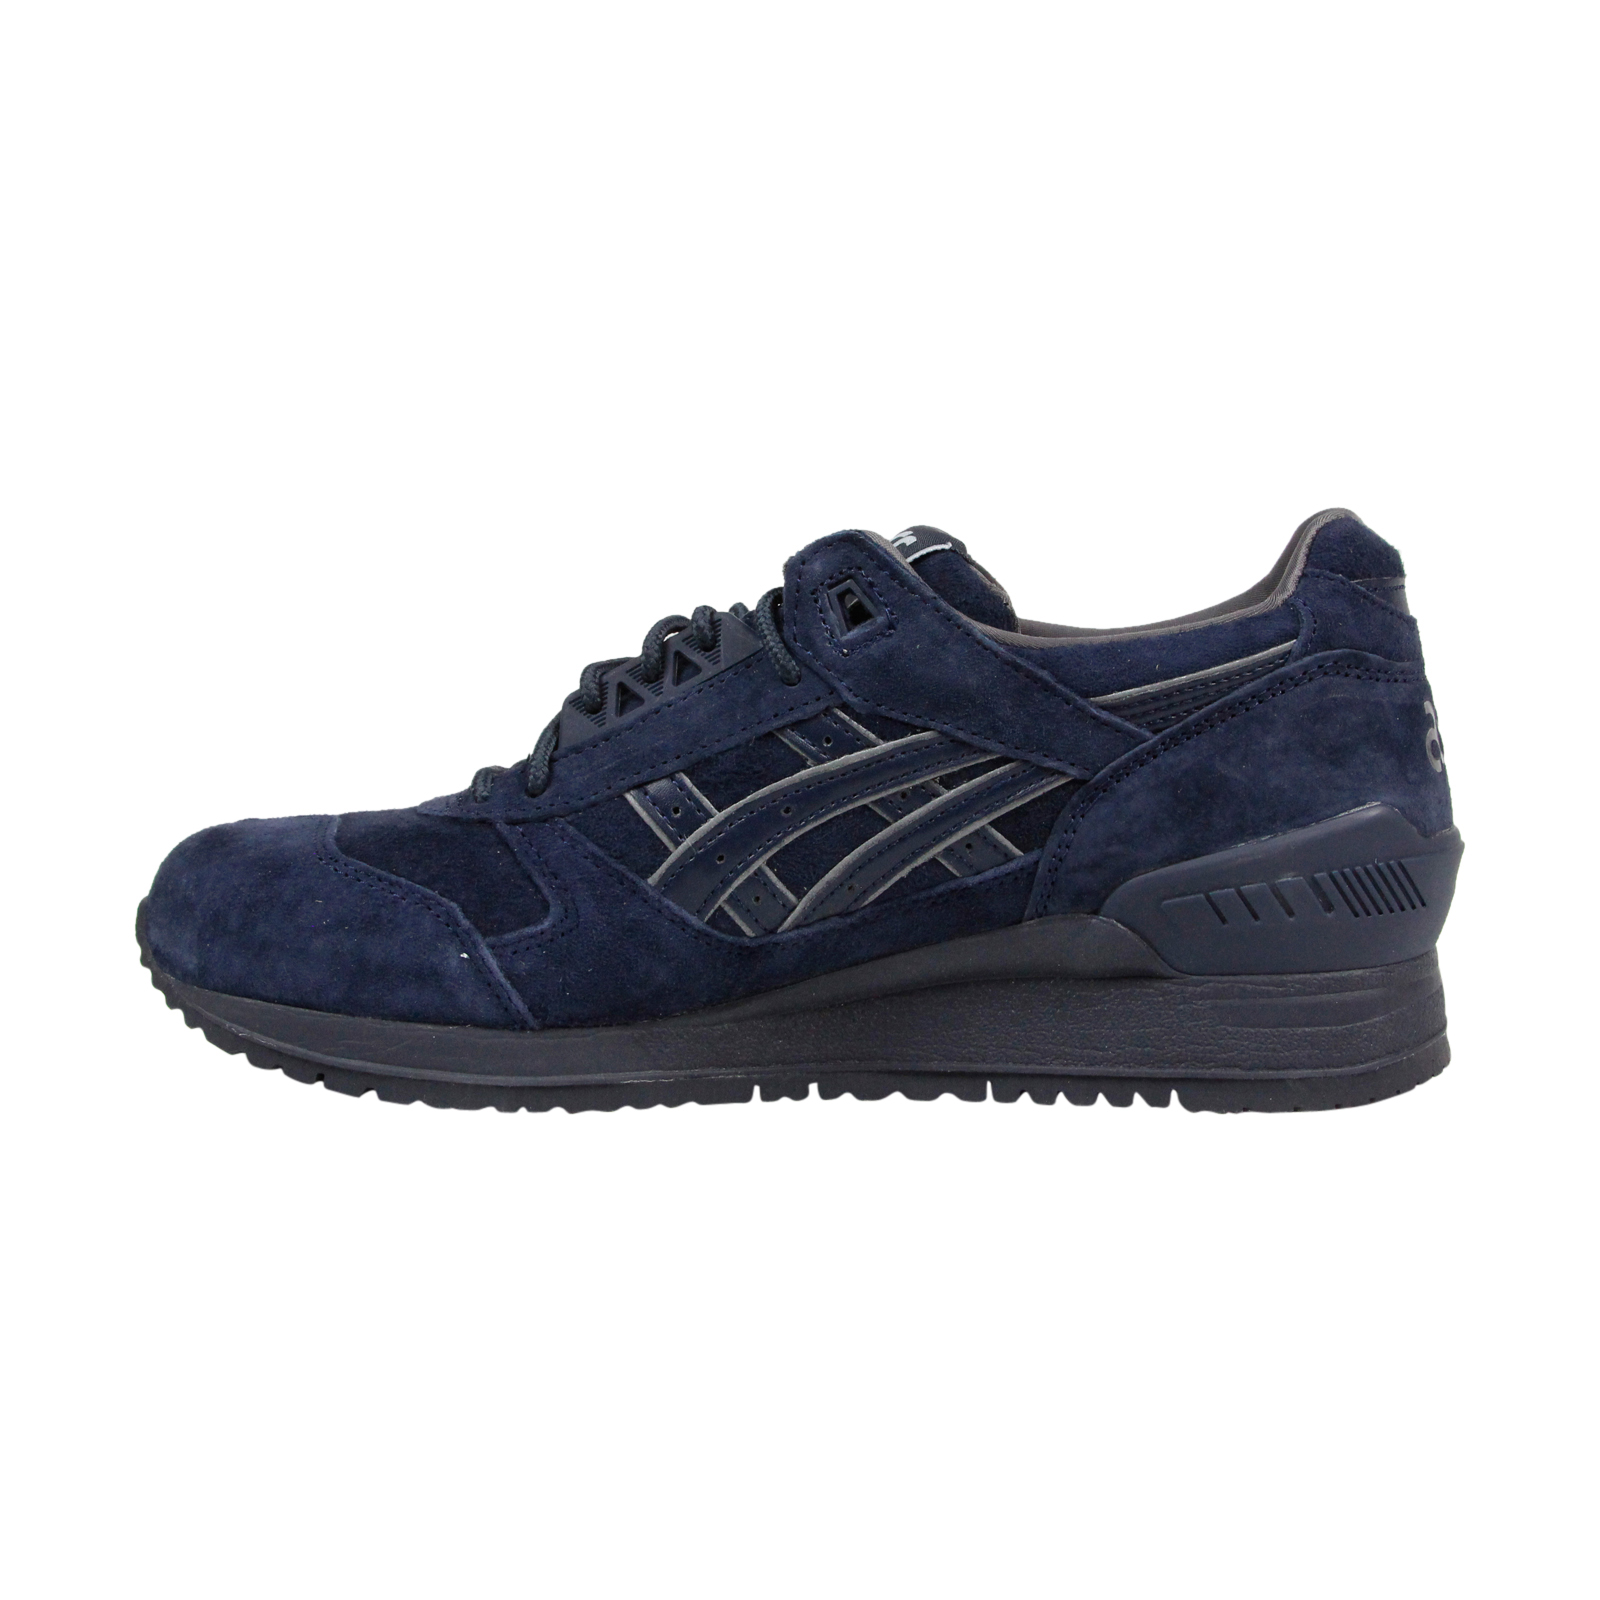 1a72270589fe ... Asics Gel Respector Mens Blue Suede Athletic Lace Up Running Shoes 2 of  3 See More